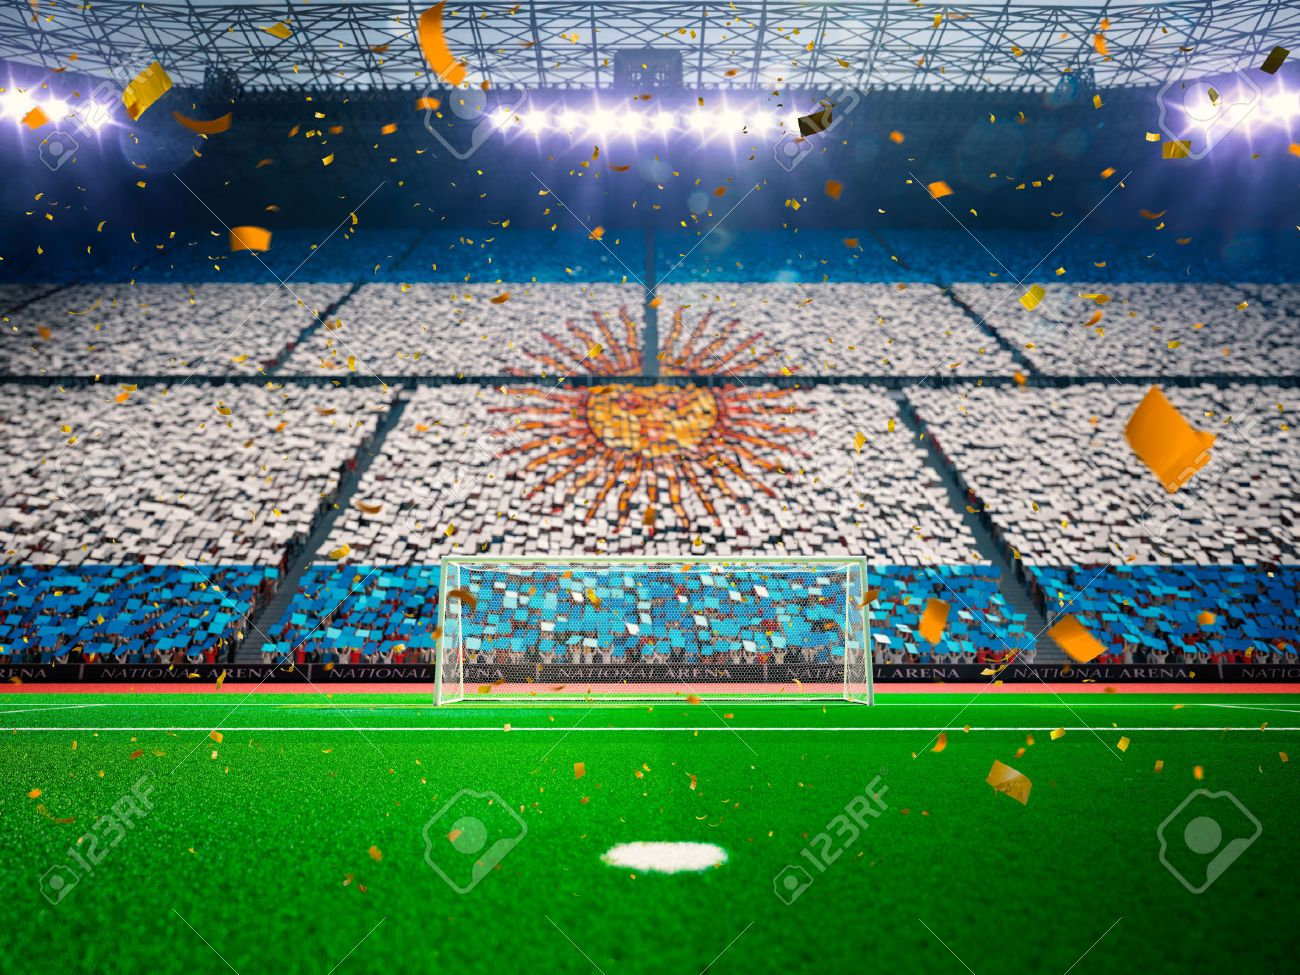 Flag Argentina of fans.Evening stadium arena soccer field championship win. Confetti and tinsel Blue Toning - 46315054